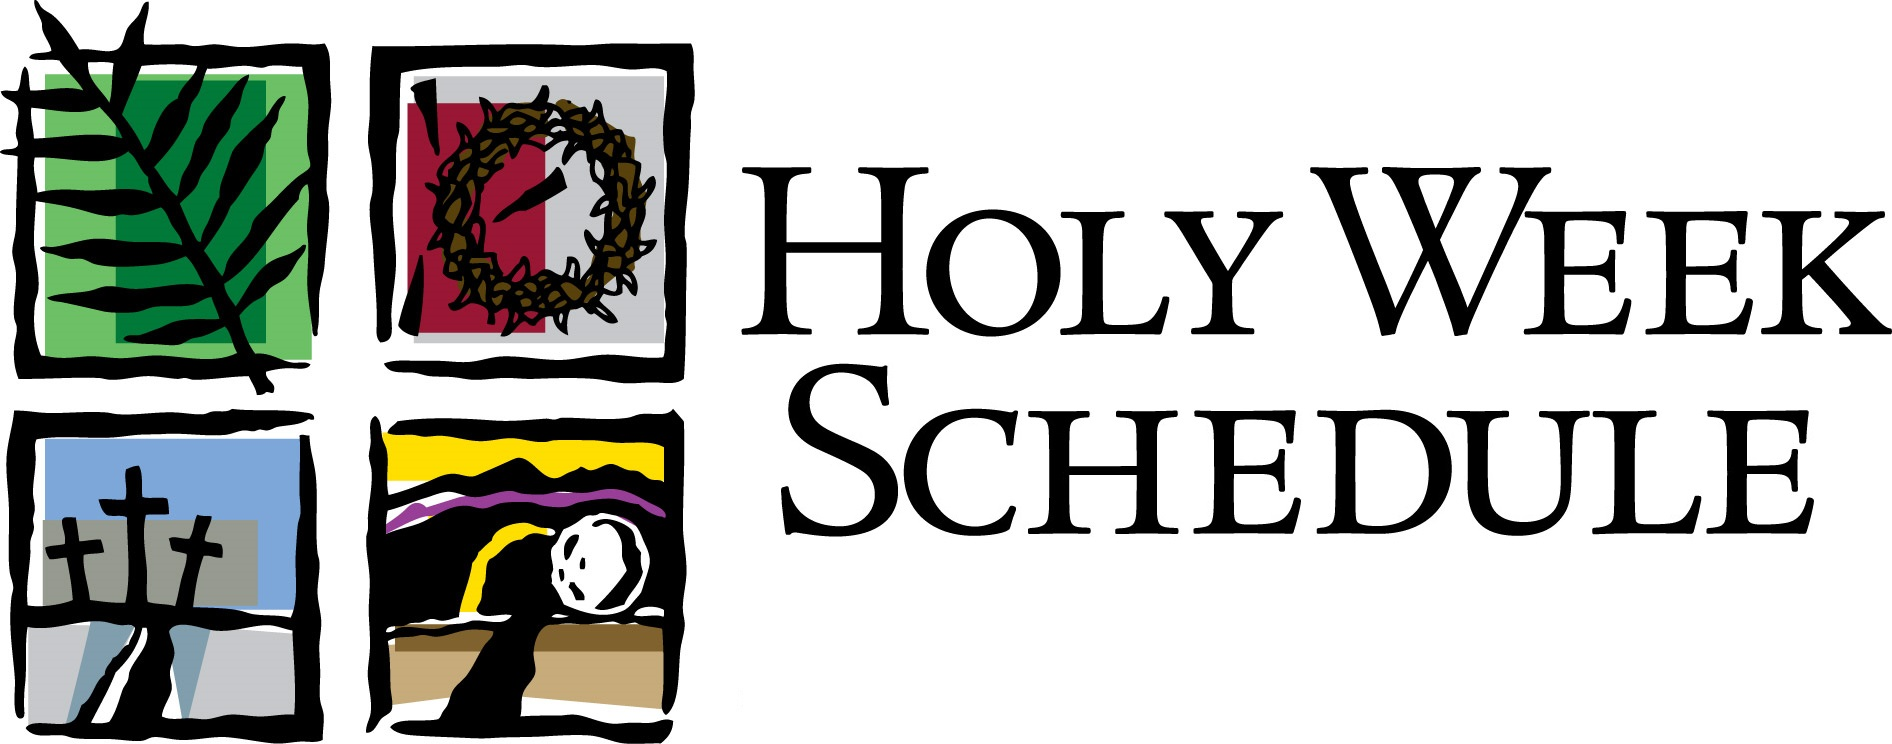 Lent clipart holy thursday. Week activities and services